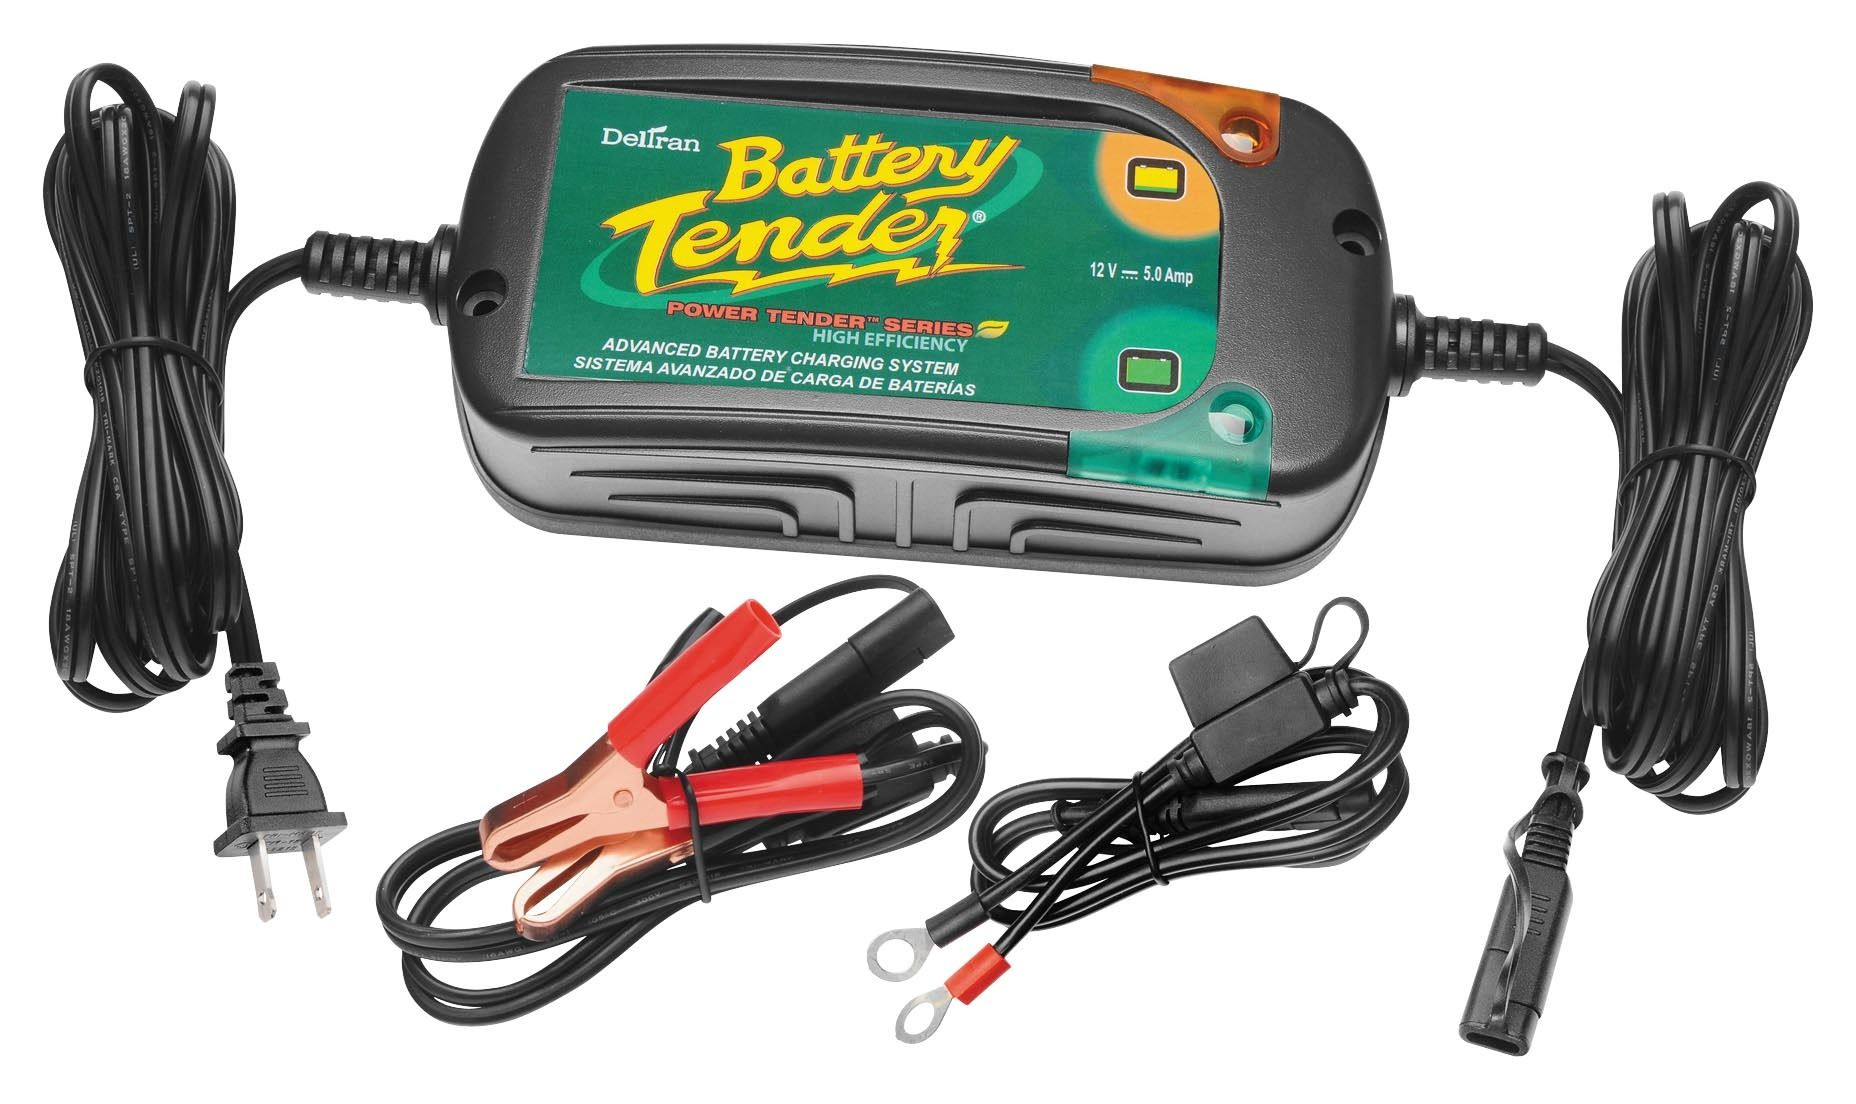 name-brand battery chargers make me sleep better at night.